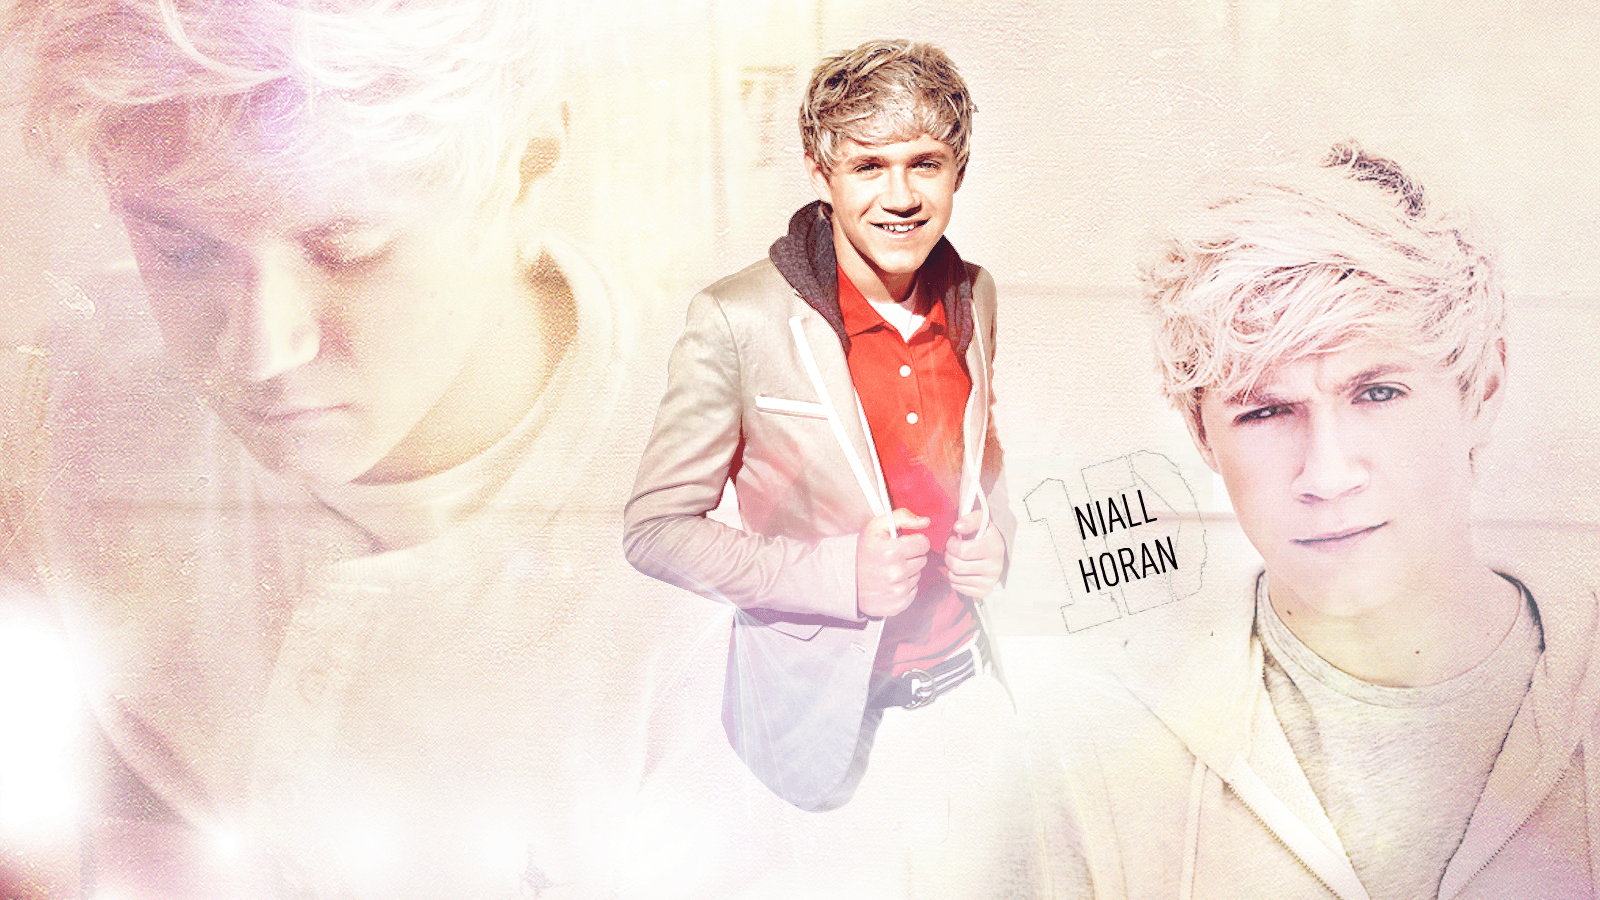 DeviantArt: More Like Niall Horan Wallpaper by JumpyJen